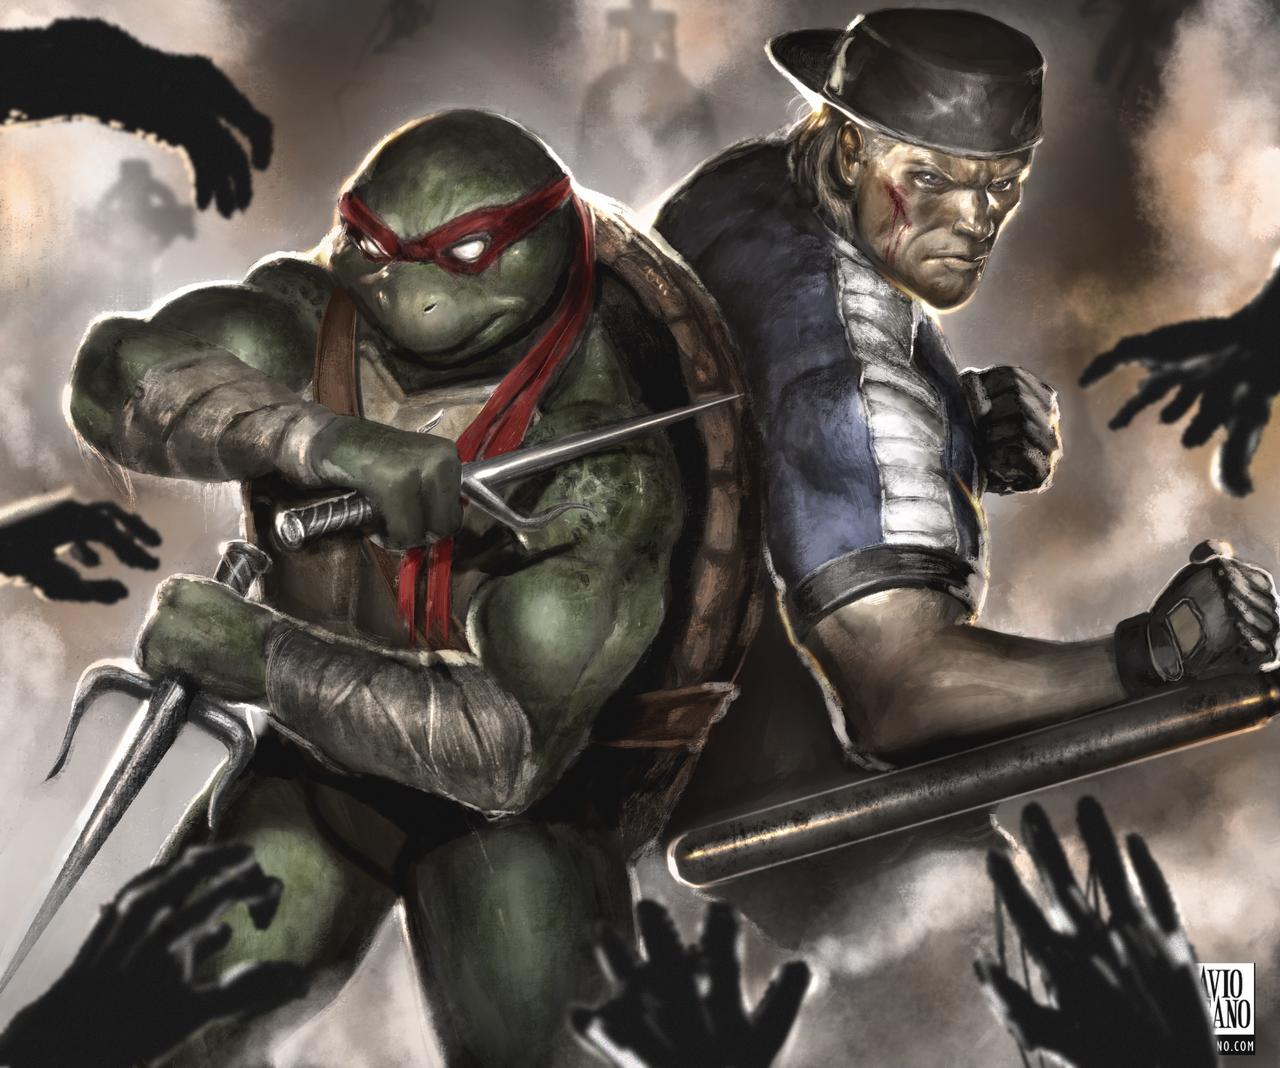 raphael_and_kurtis_stryker_vos_zombies__